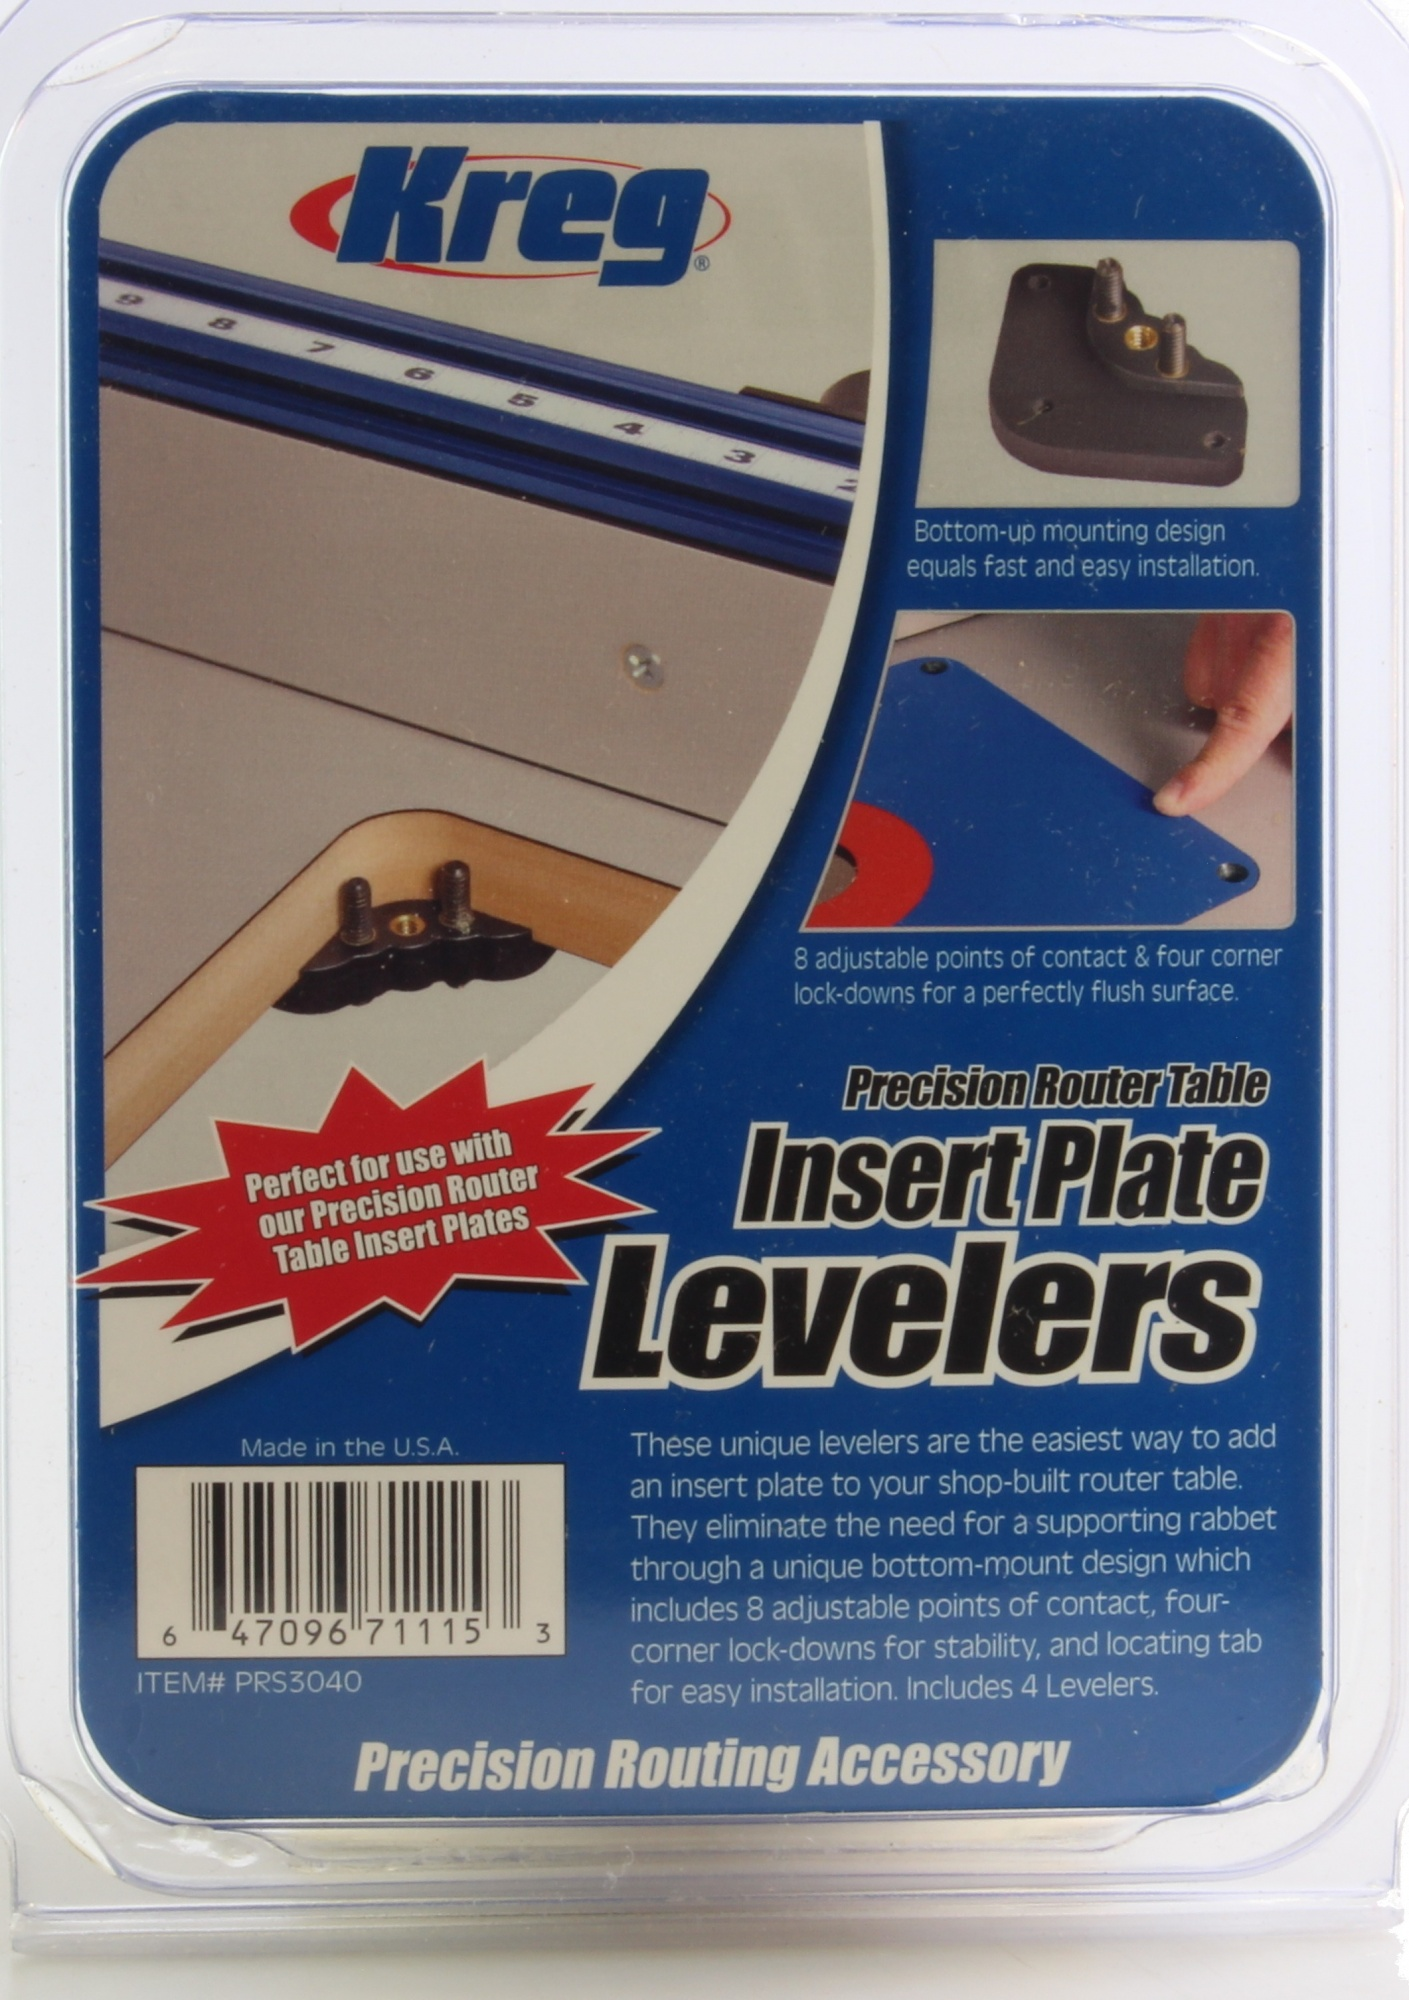 Kreg precision router table insert plate levelers gallery wiring kreg precision router table insert plate levelers choice image kreg precision router table insert plate levelers greentooth Choice Image